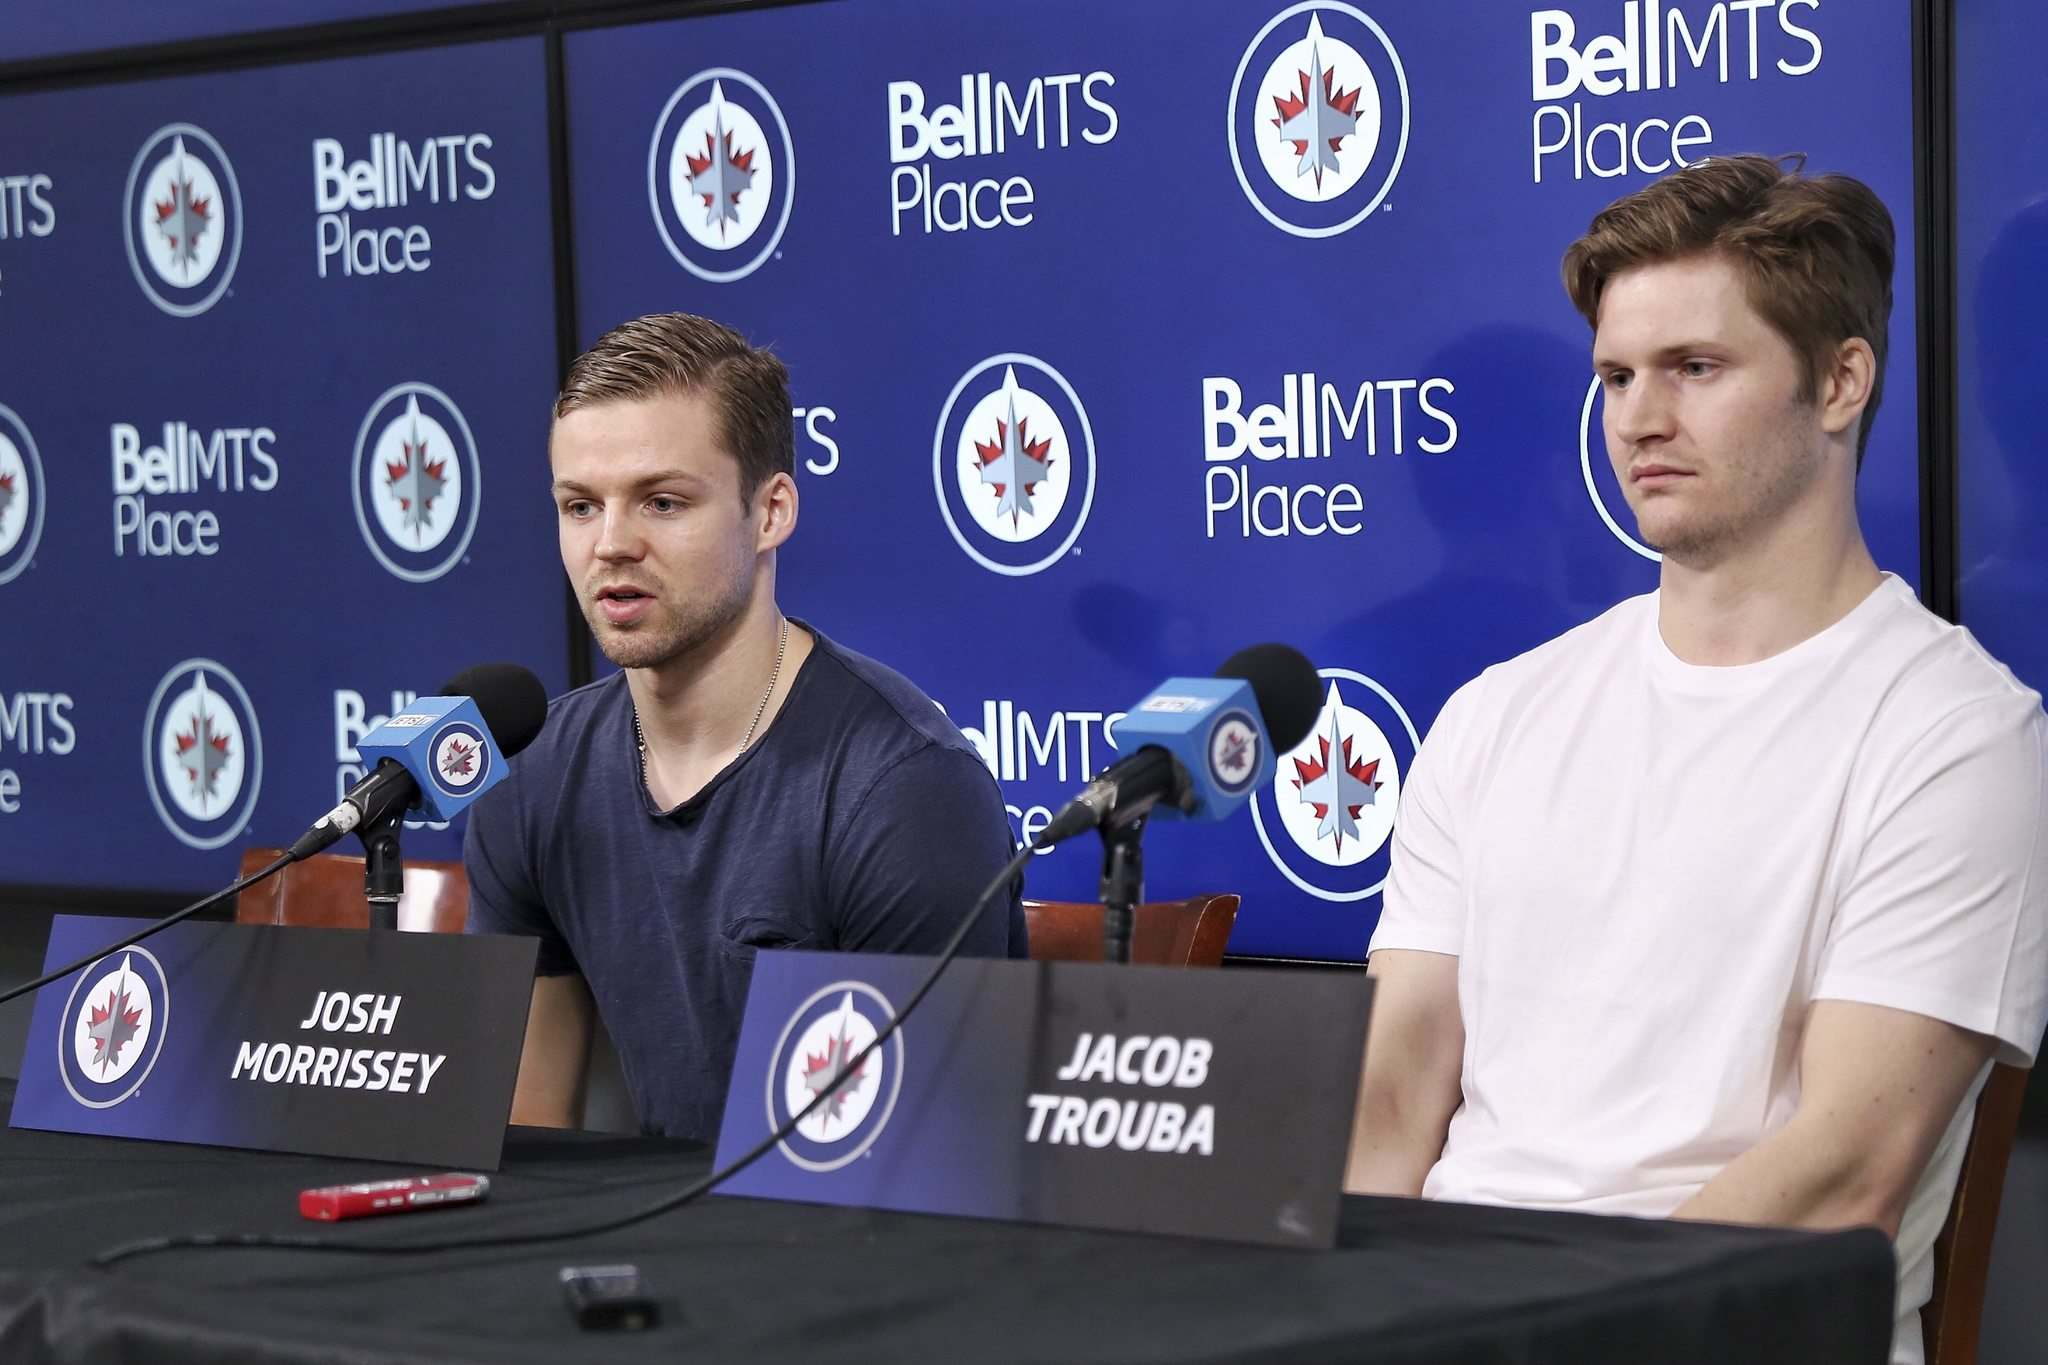 """I haven't put a whole ton of thought into it. The season just ended,"" said Jacob Trouba (right, with Josh Morrissey). ""But I'm sure in the next week or two, or couple of days, I'll meet with my agent and we'll go over stuff and see where it goes from there and talk to (Winnipeg GM Kevin Cheveldayoff).""</p>"